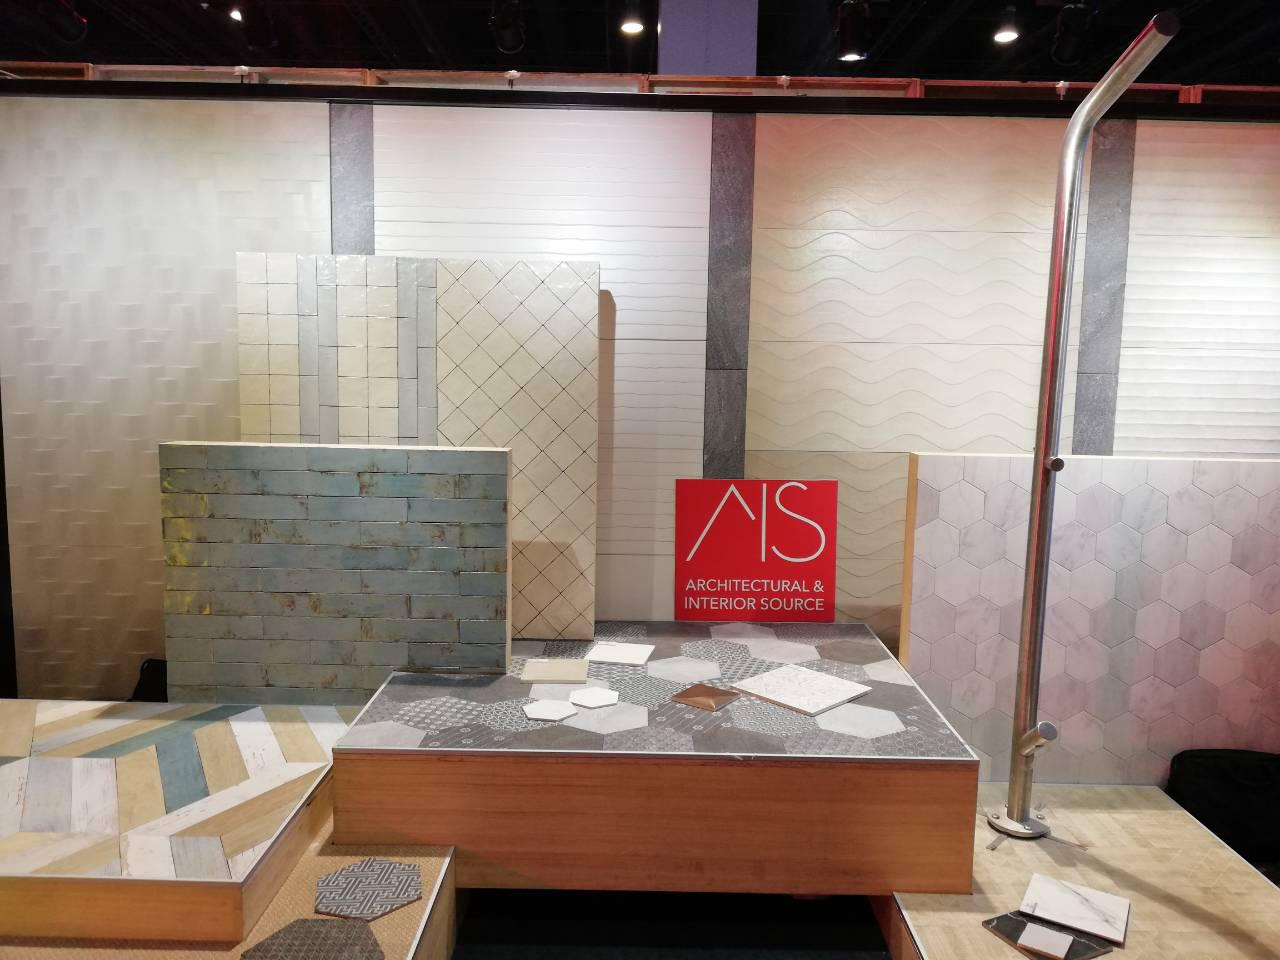 Architectural & Interior Source booth at ID Show 2018